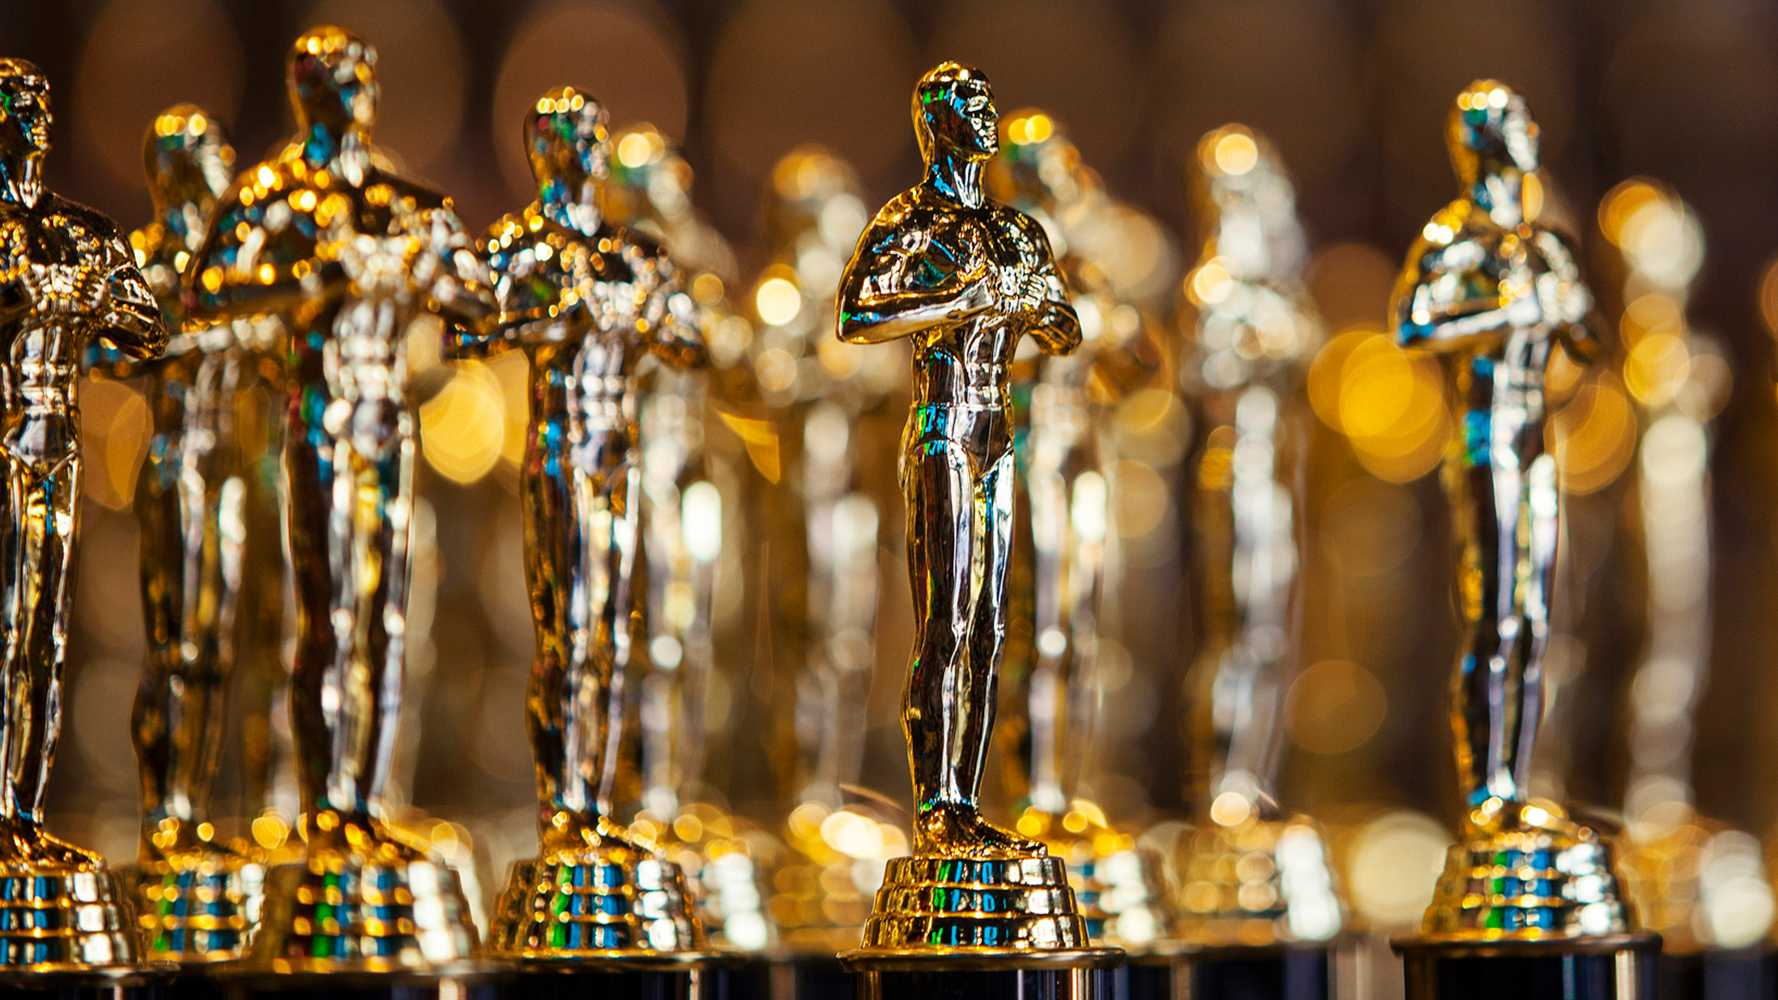 Here's what you need to know about the 2018 Oscars